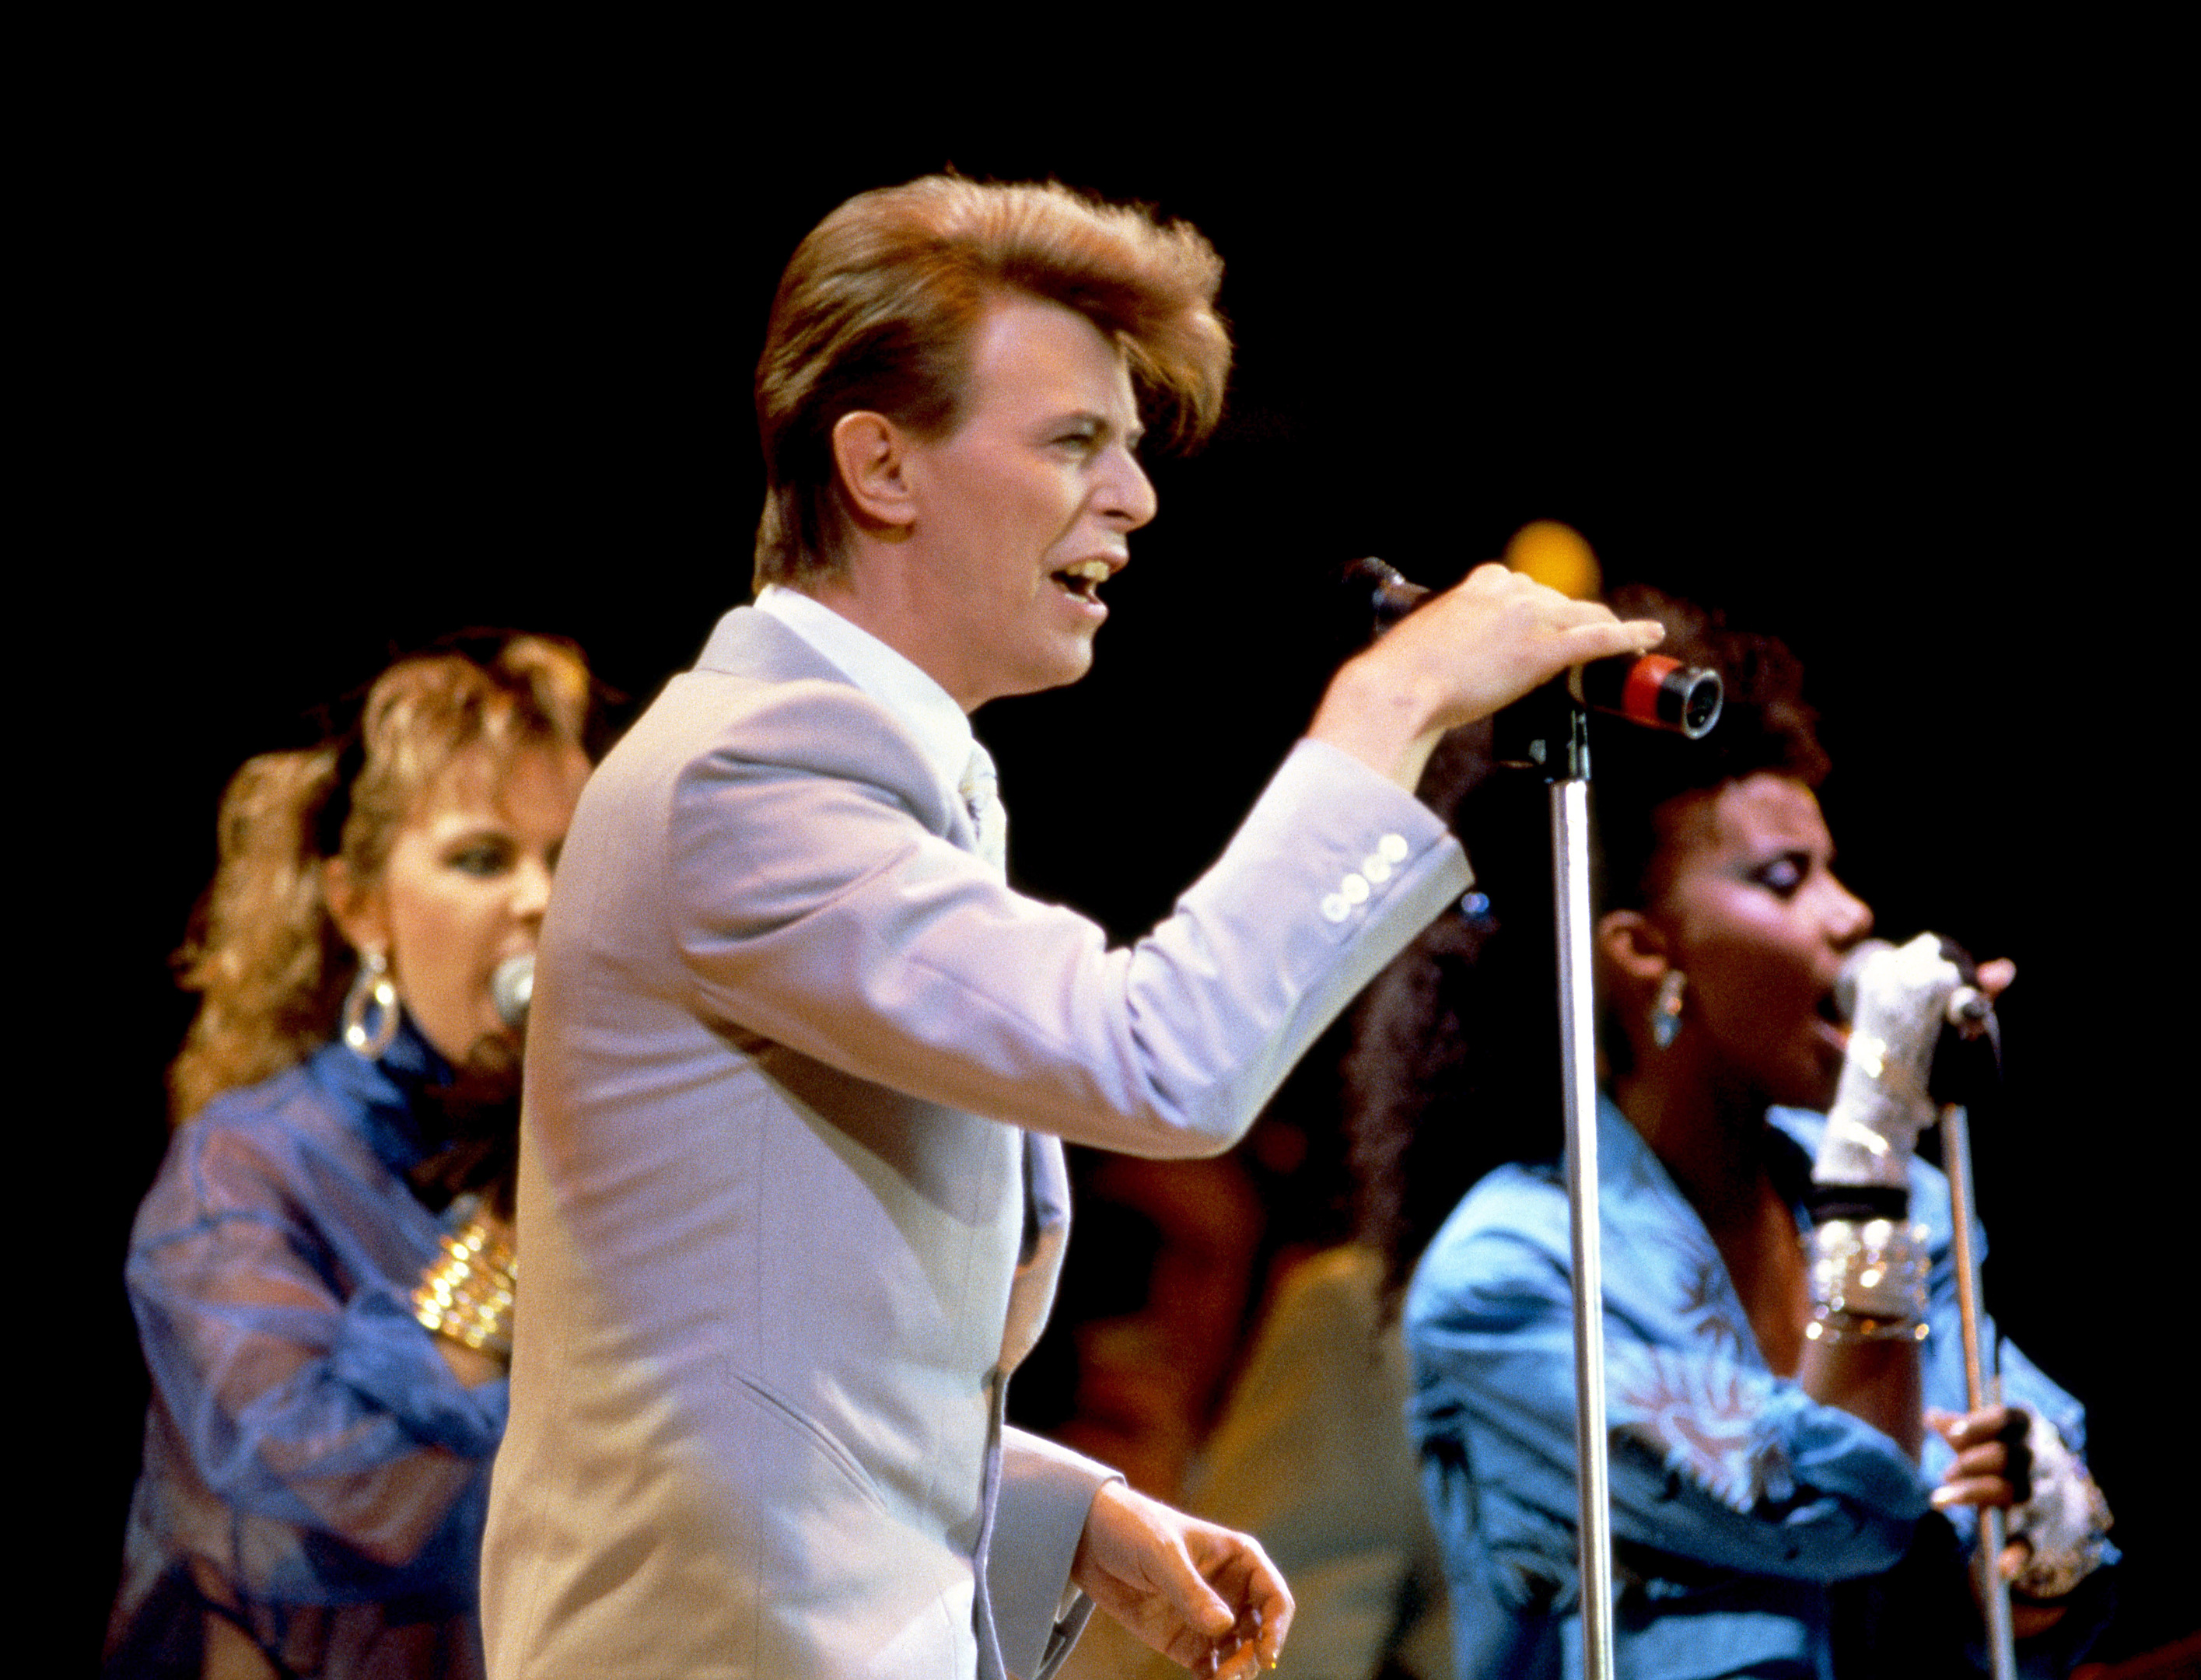 David Bowie performing at Live Aid, 1985 (PA Archive)